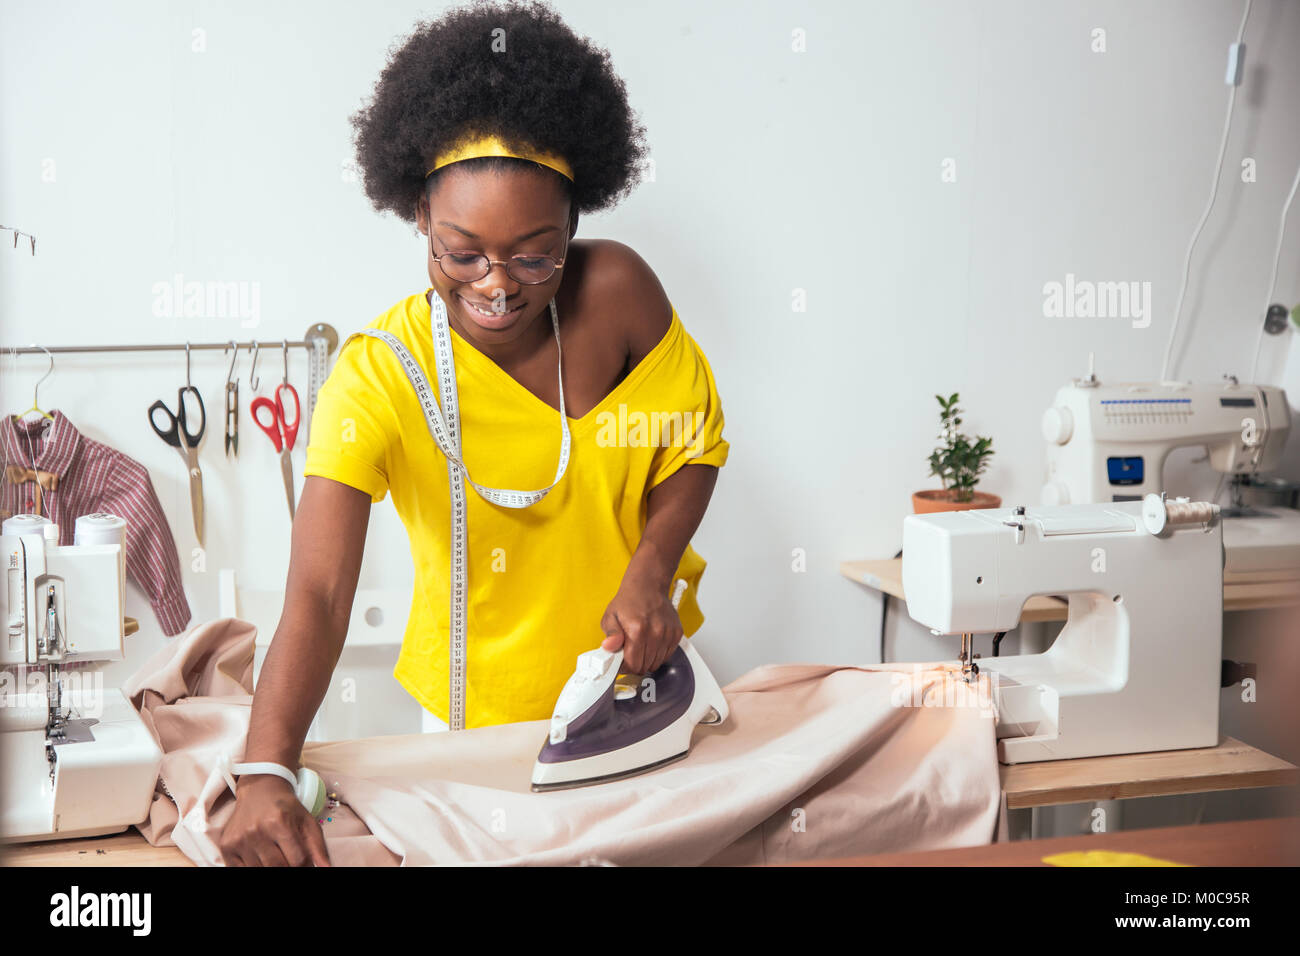 african Woman seamstress Ironing cloth - Stock Image